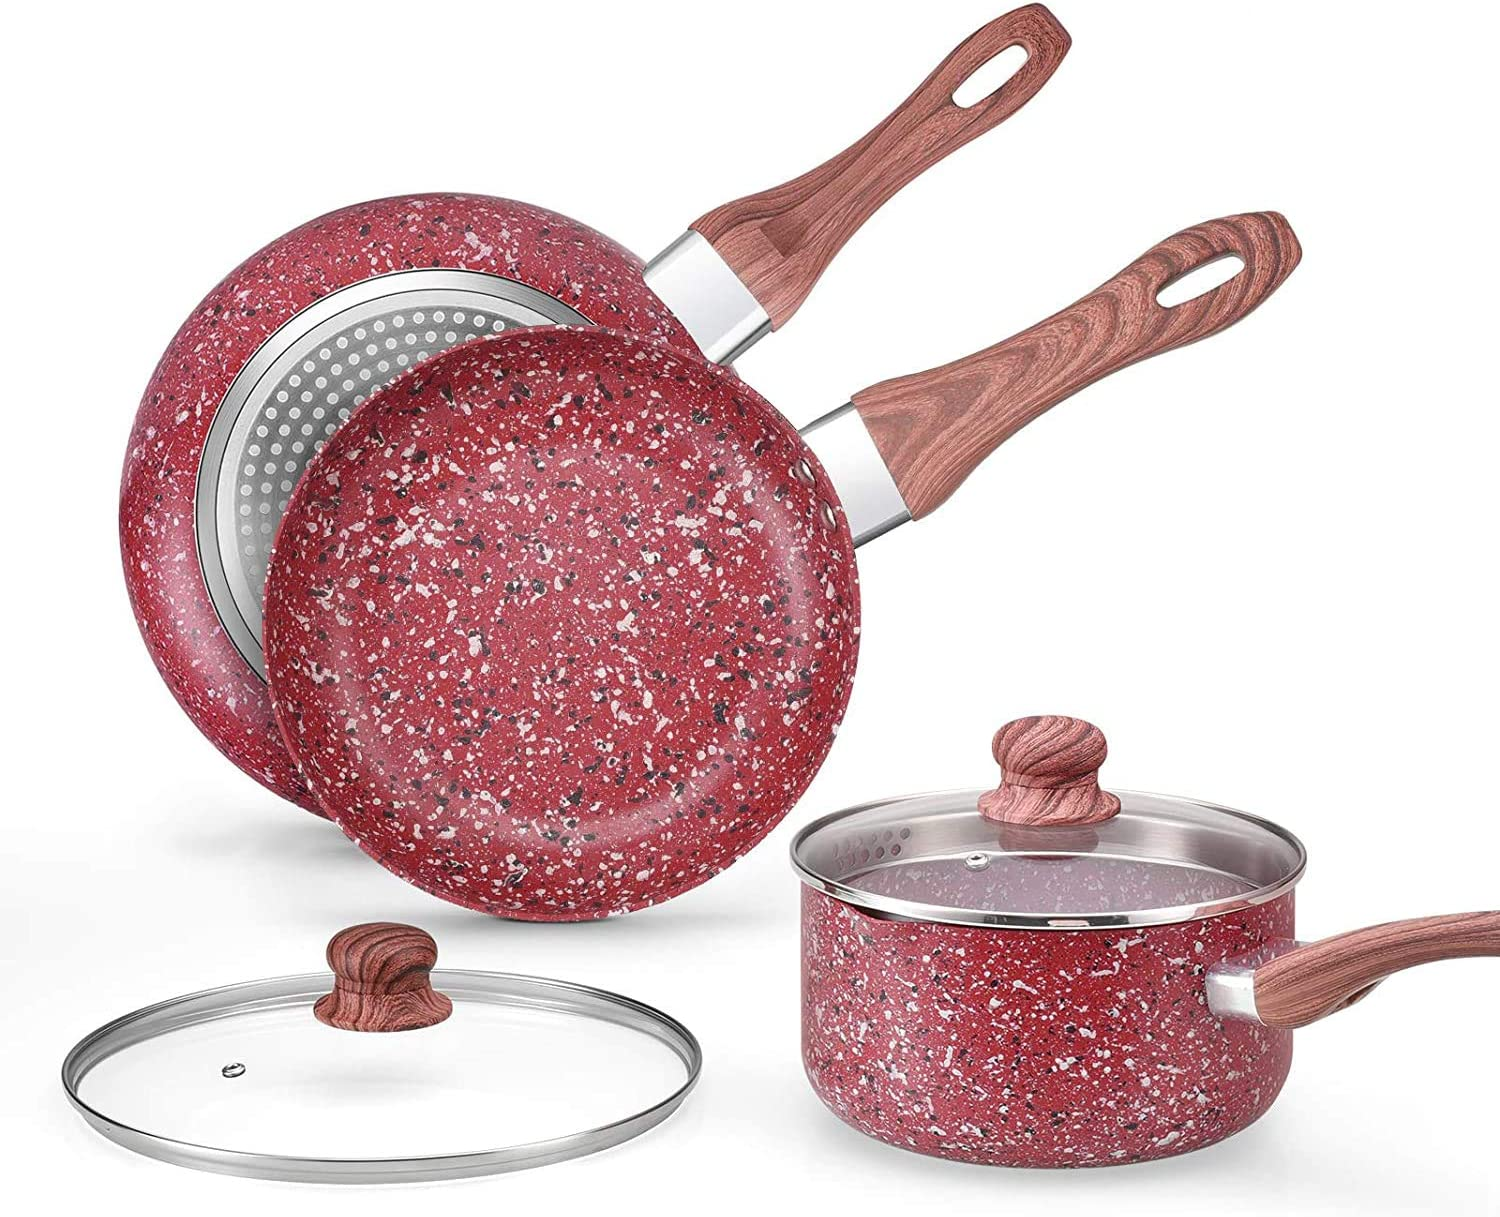 CSK Nonstick Cookware Set - Saucepan and Frying Pans/Skillets Set, Induction Cooker Compatible, w/Red Stone-Derived Nonstick Coating & Cool-to-Touch Bakelite Handle, PFOS PFOA Free, 5 Piece